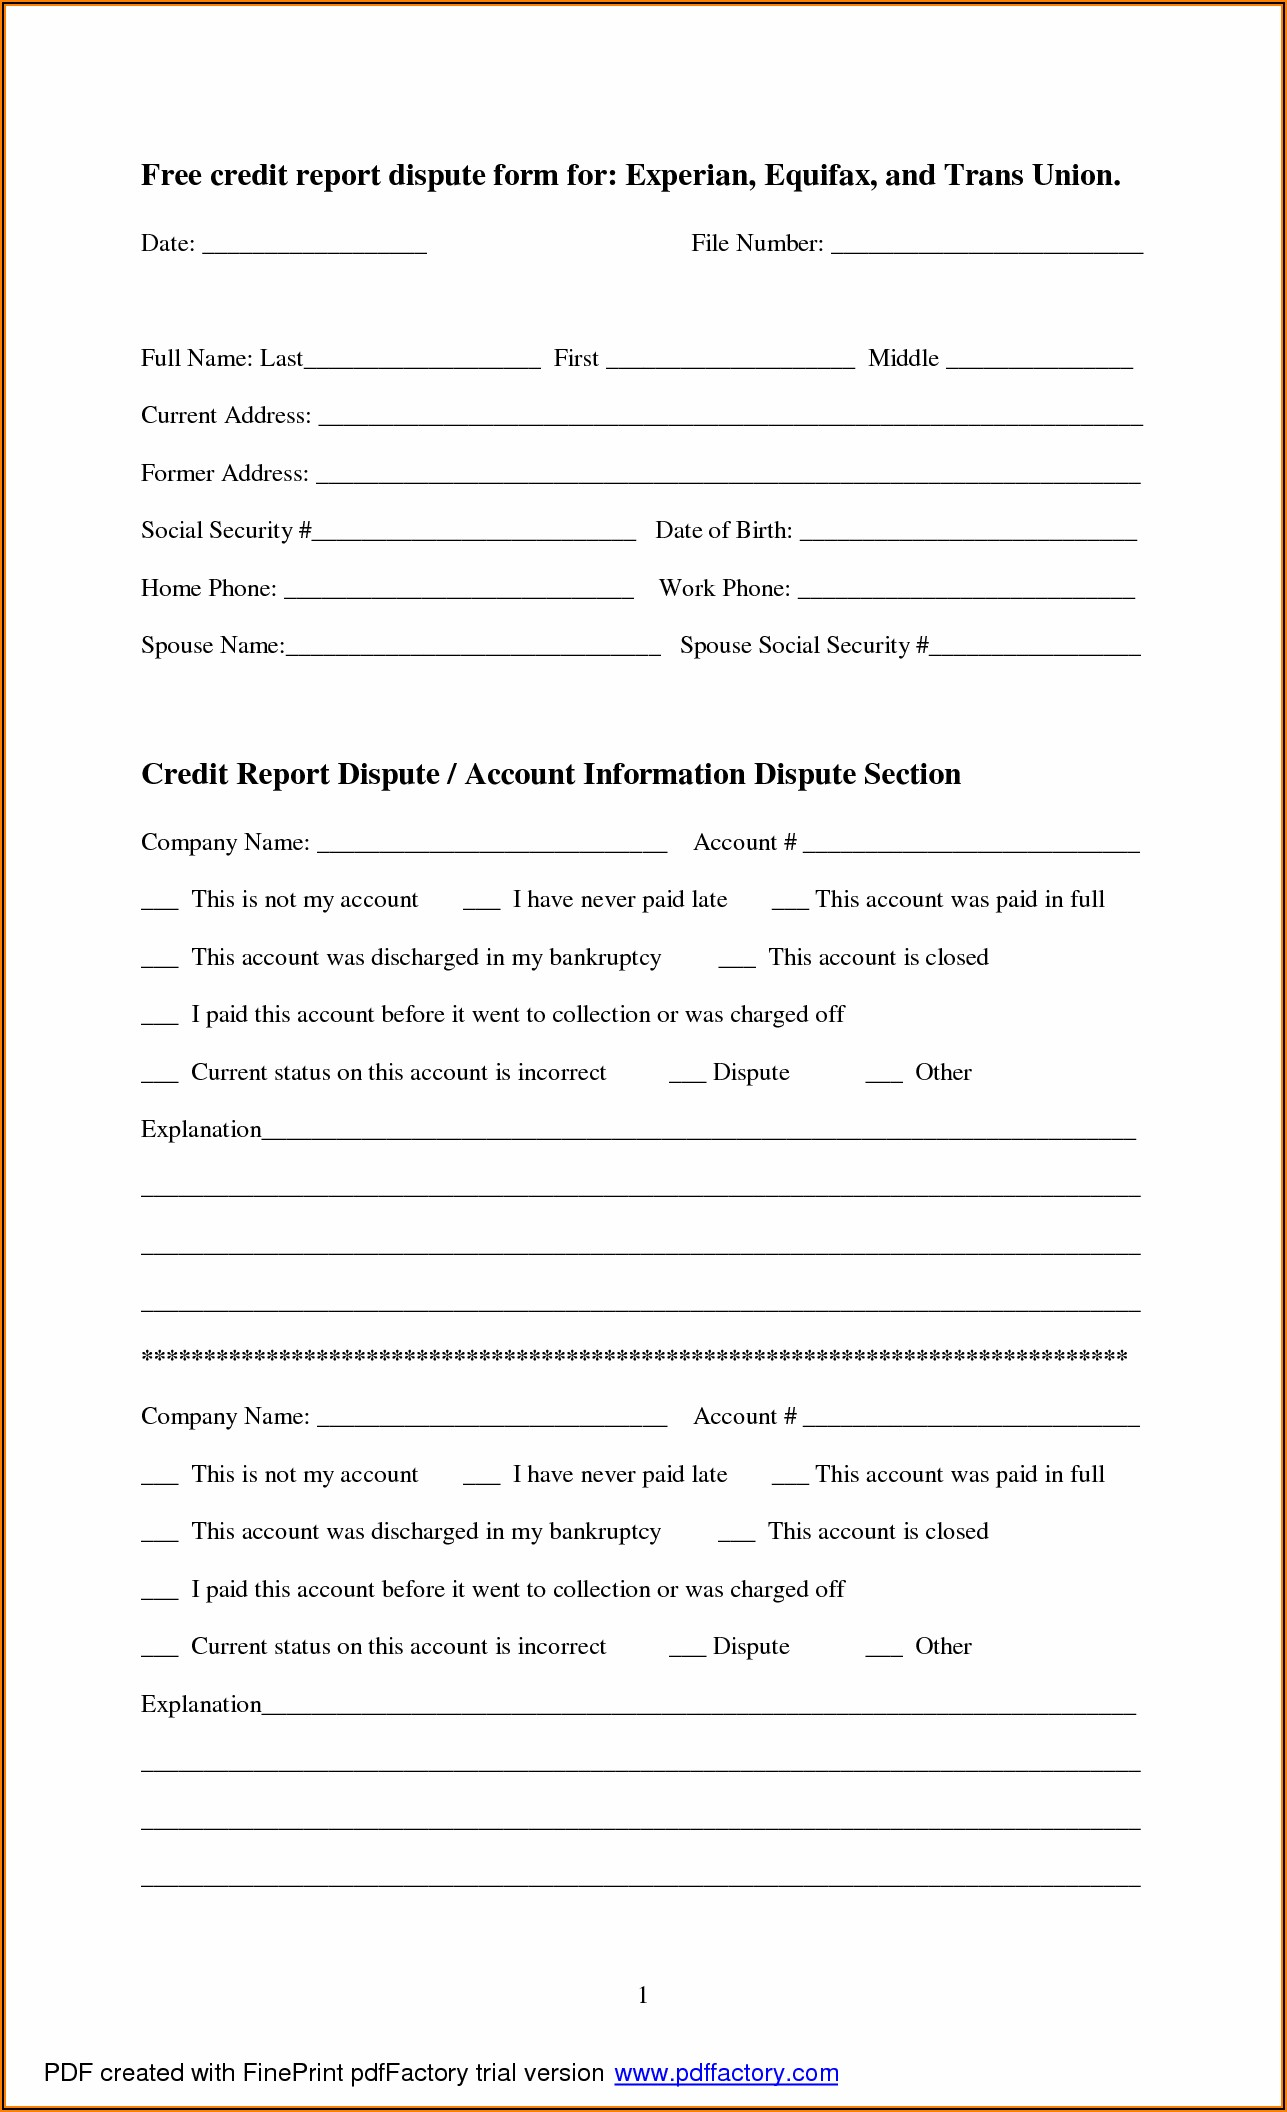 Printable Dispute Form For Transunion